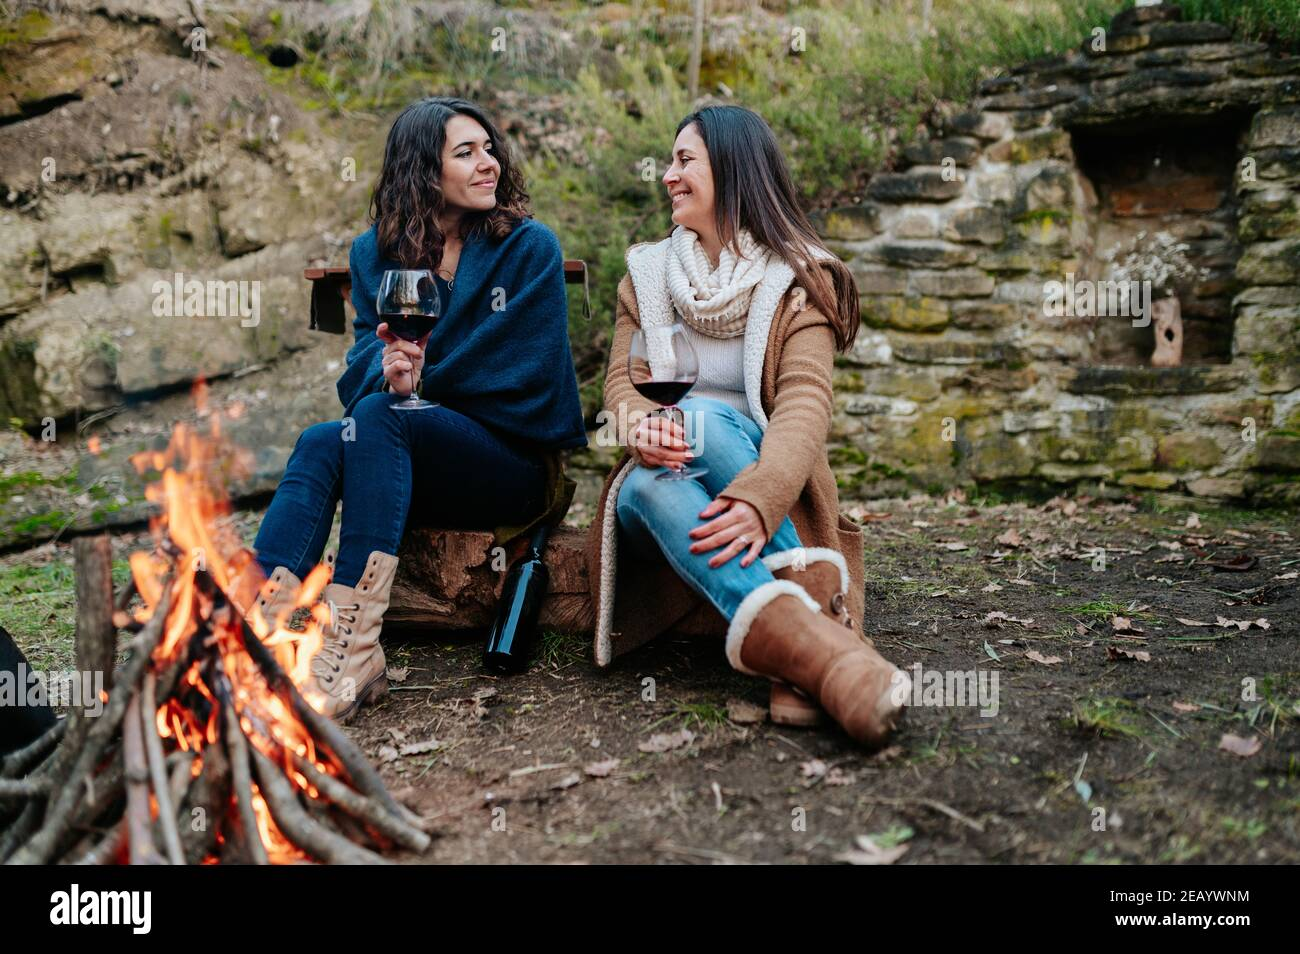 young happy women talking together while drinking glass of red wine. Females warming next to the fire. Campfire, outdoors activities concept. Stock Photo